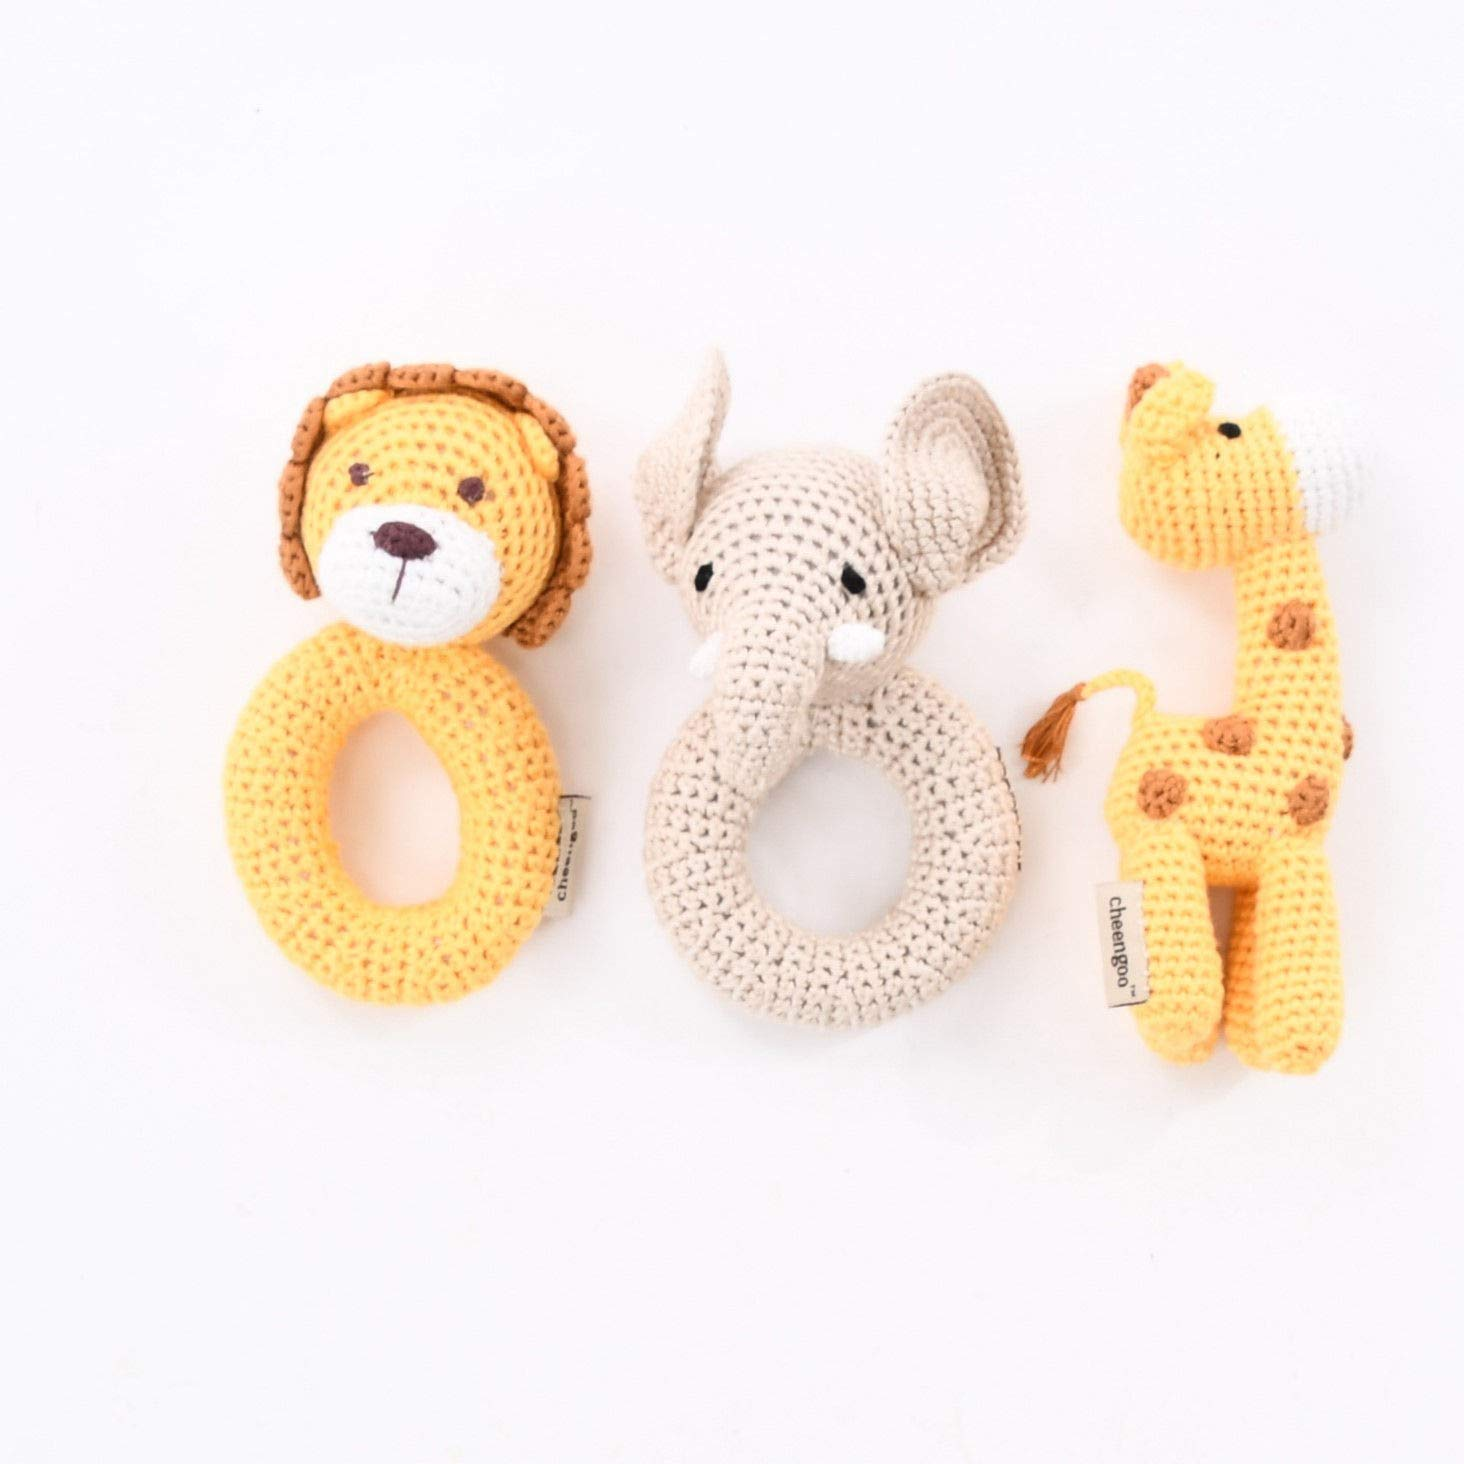 Organic Baby Toy Rattles - Crochet Jungle Themed Set of 3